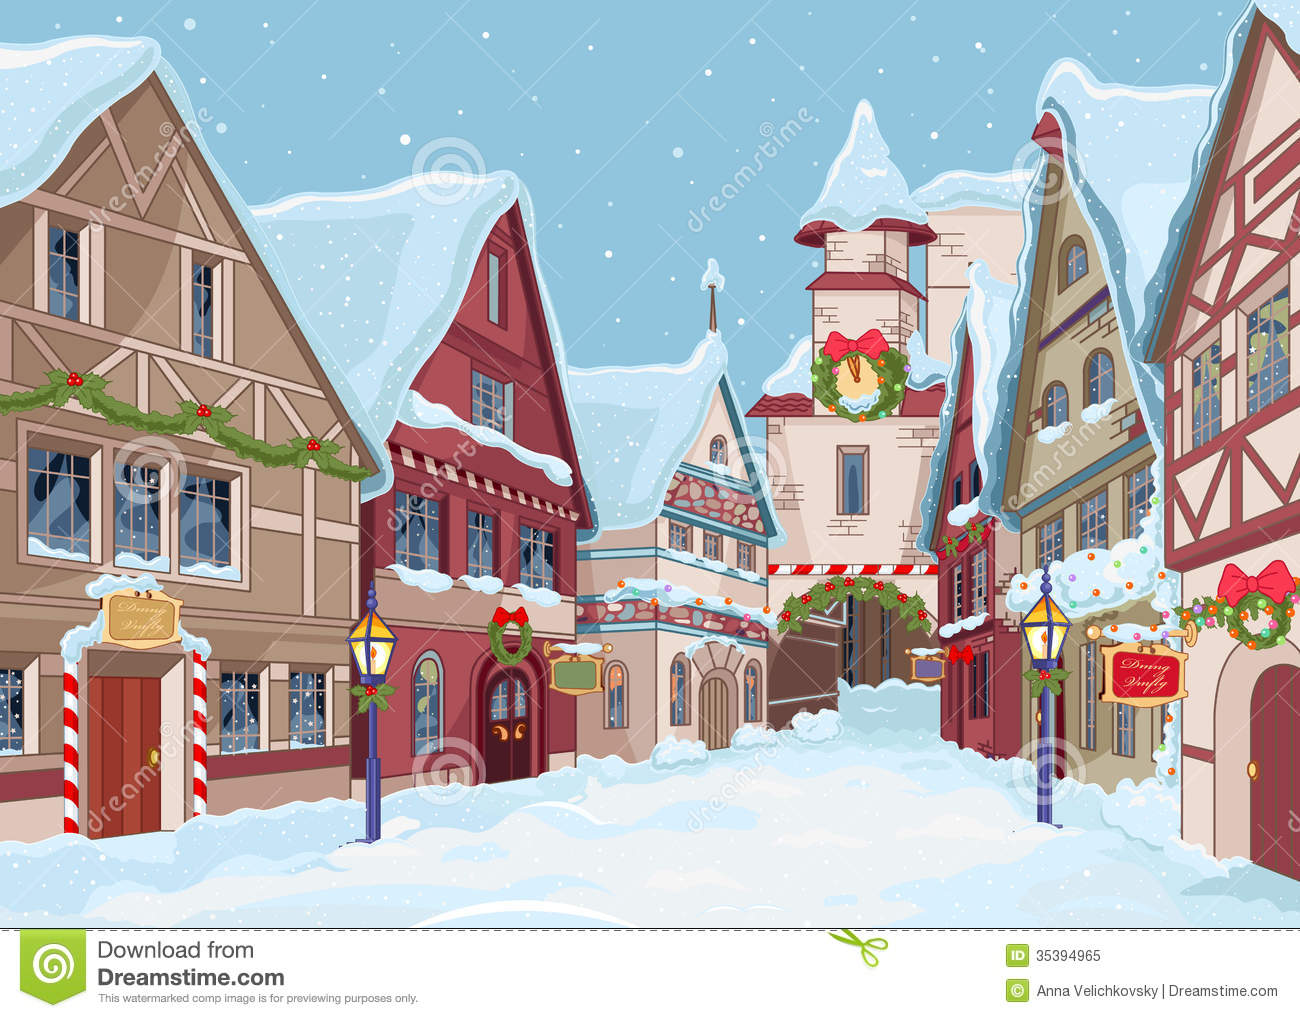 Christmas town clipart.